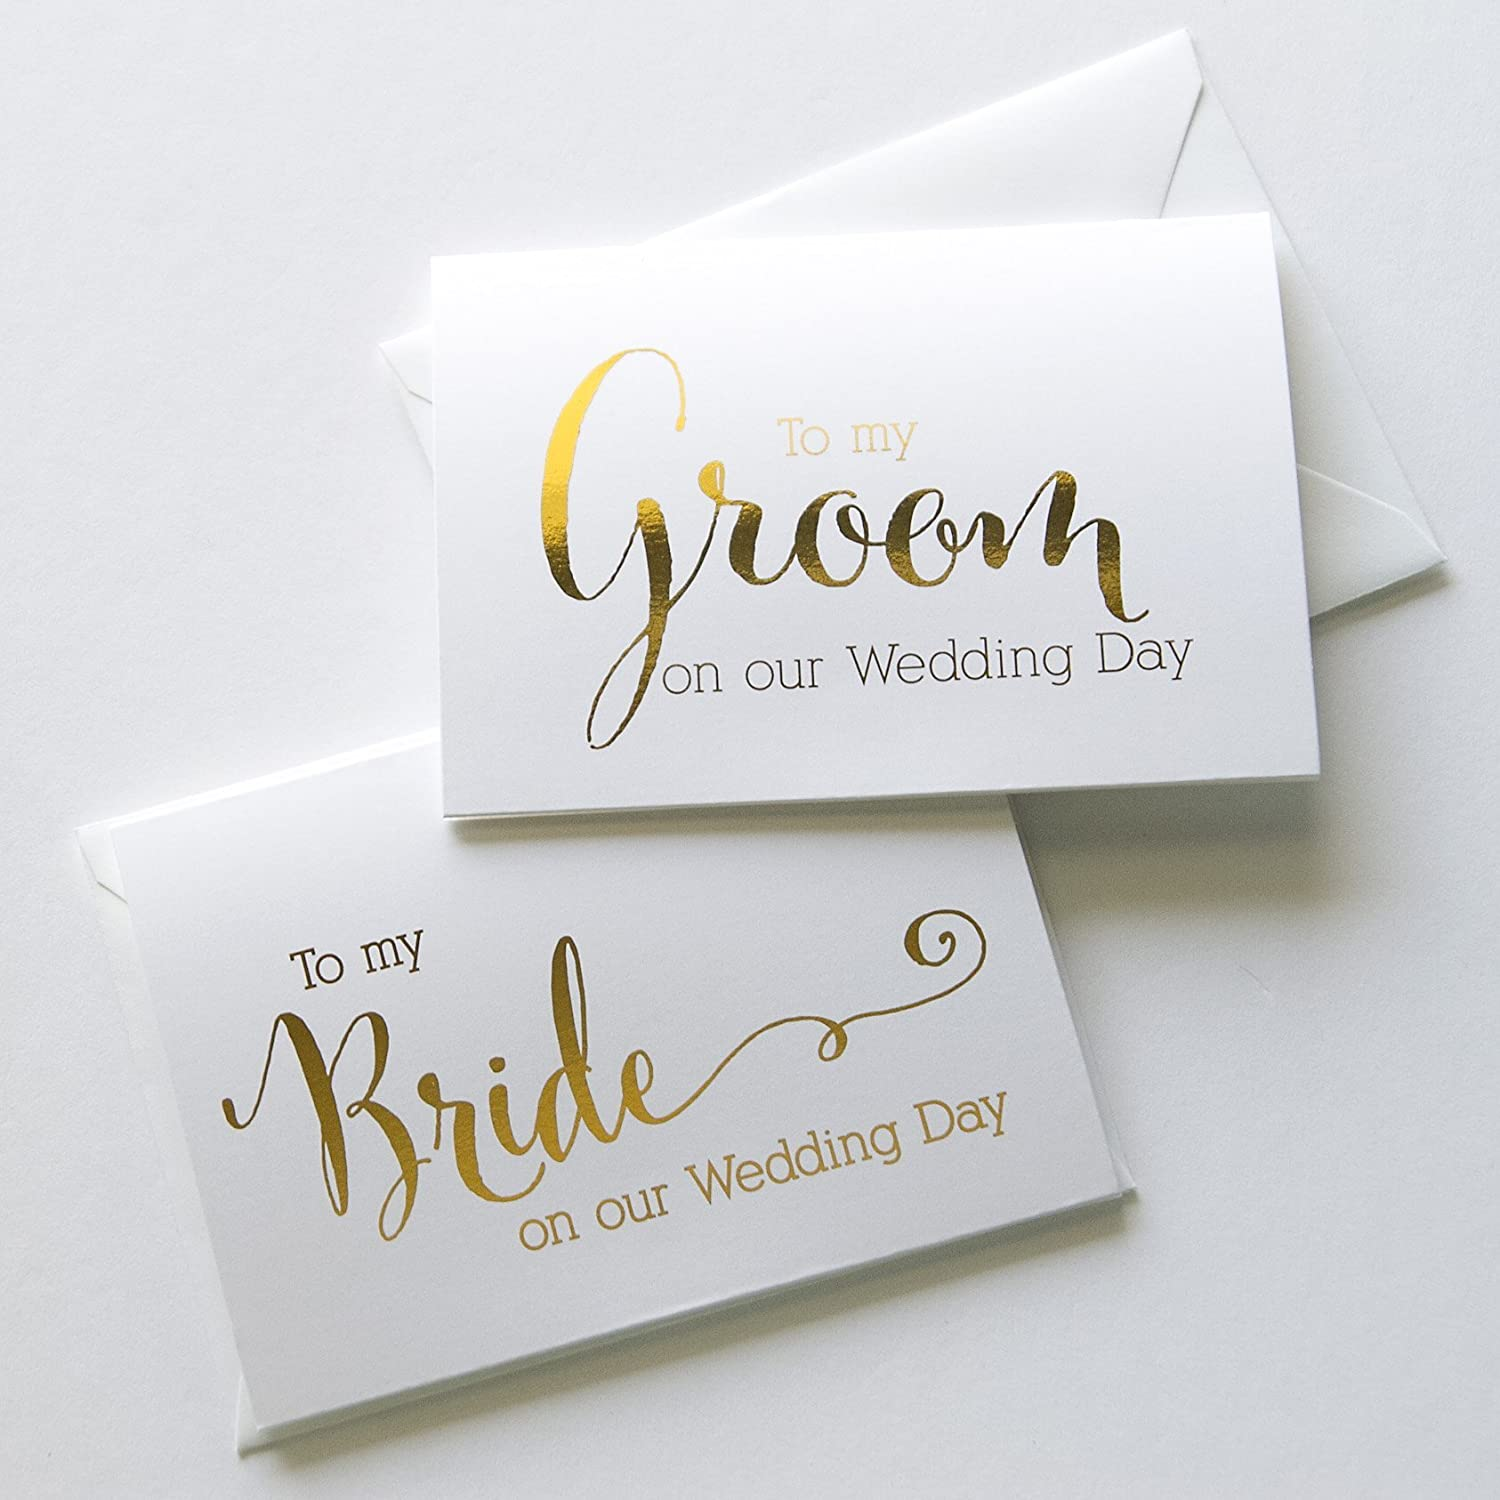 Wedding Day Foiled Card Set, To My Bride, To My Groom, Gold Foiled Vow Cards (WD182-183)